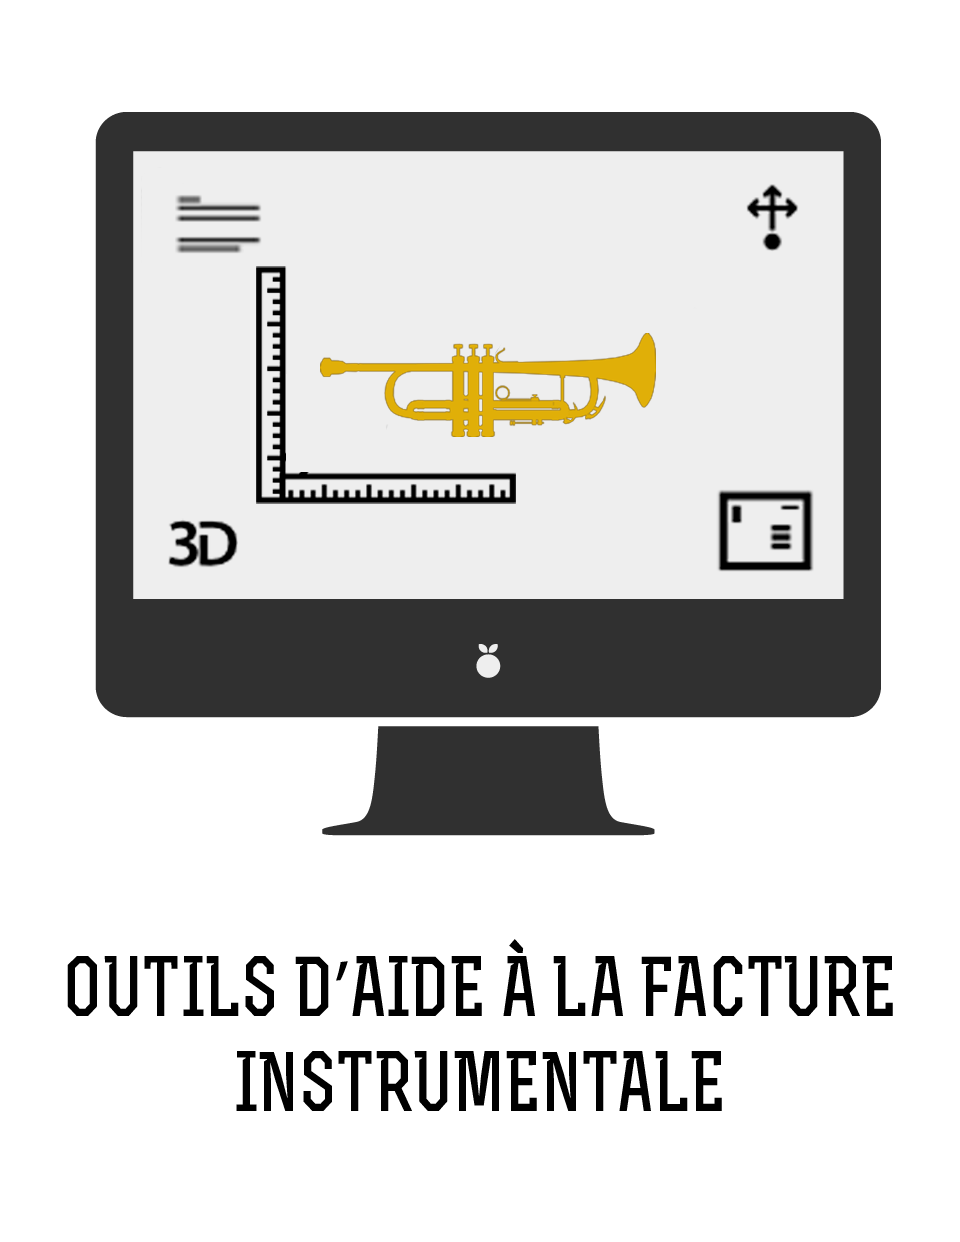 outils-aide-facture-instrumentale